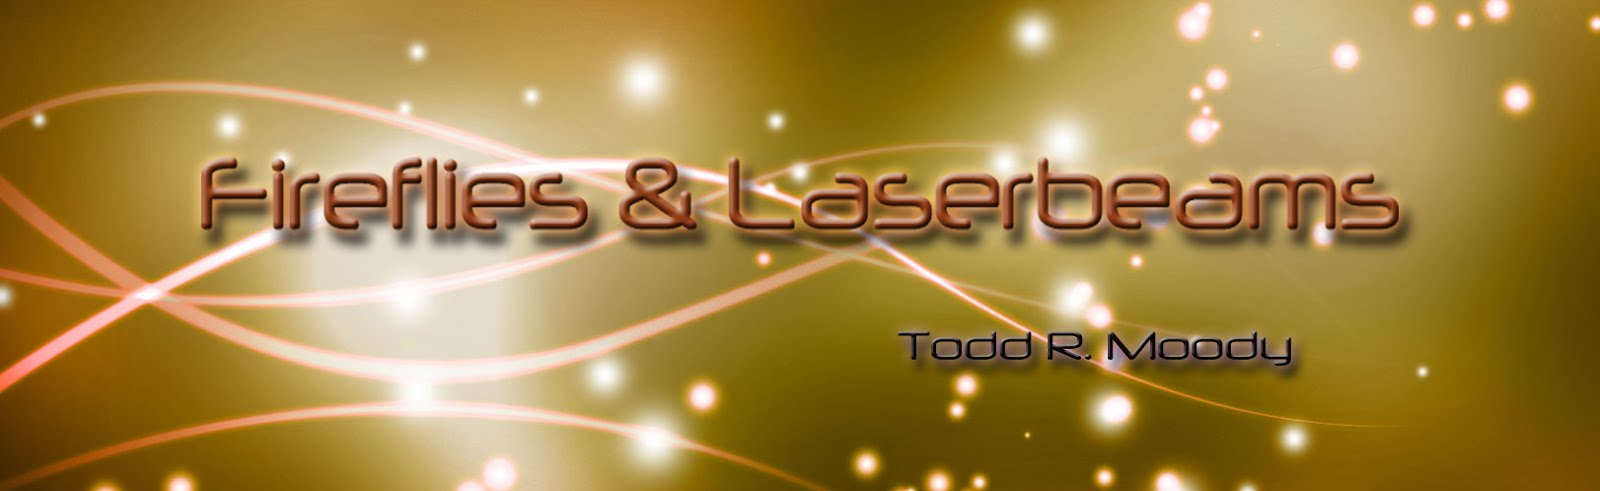 Fireflies and Laserbeams | Todd R. Moody